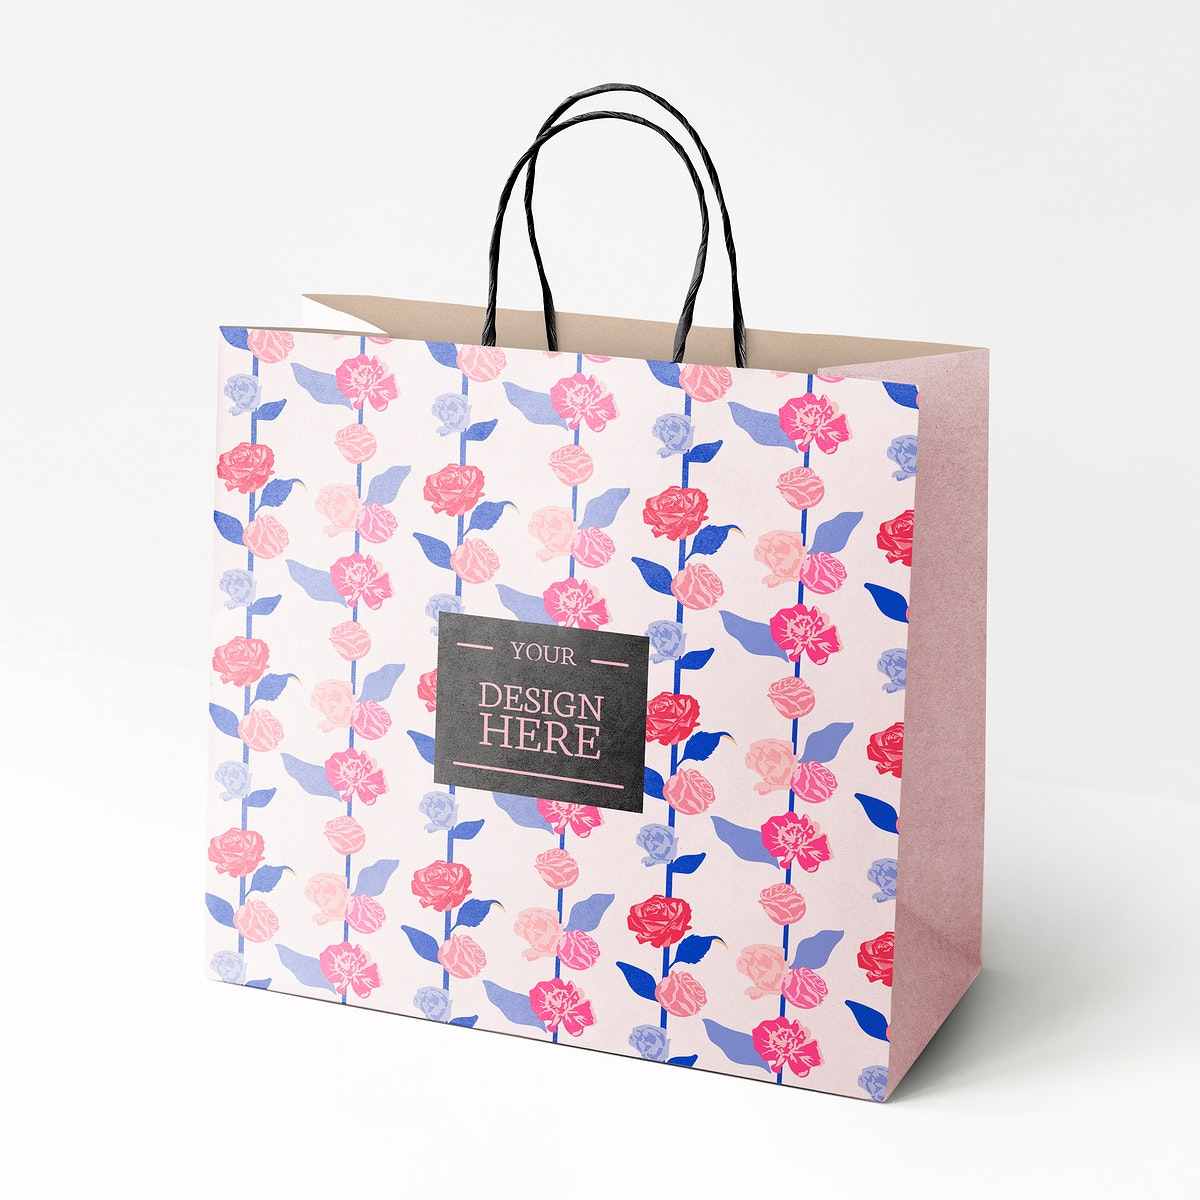 Floral shopping bag mockup psd with colorful roses